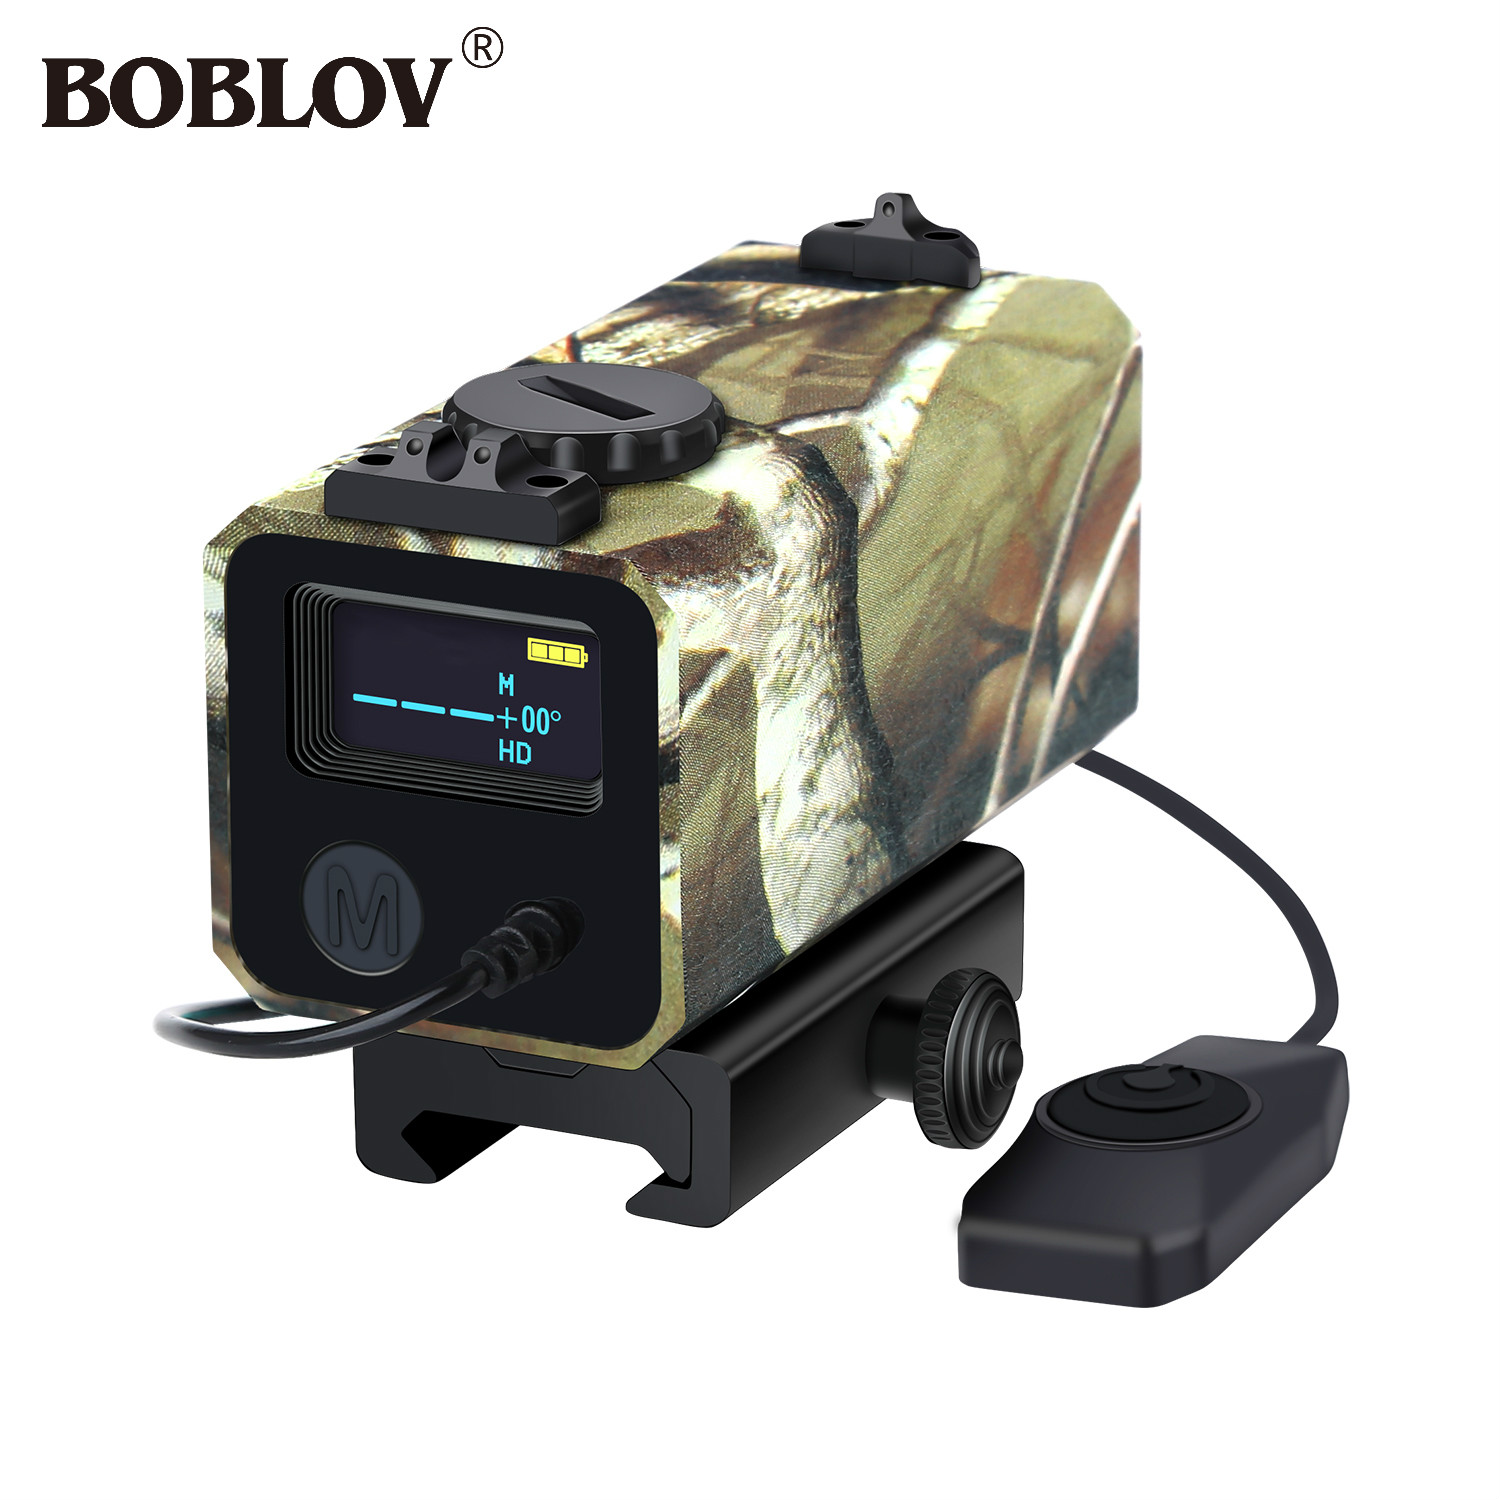 BOBLOV LE-032 700m Mini Tactical Outdoor Hunting Rangefinder Rifle Scope Sight Target Distance Meter with Rail Mount Lightweight